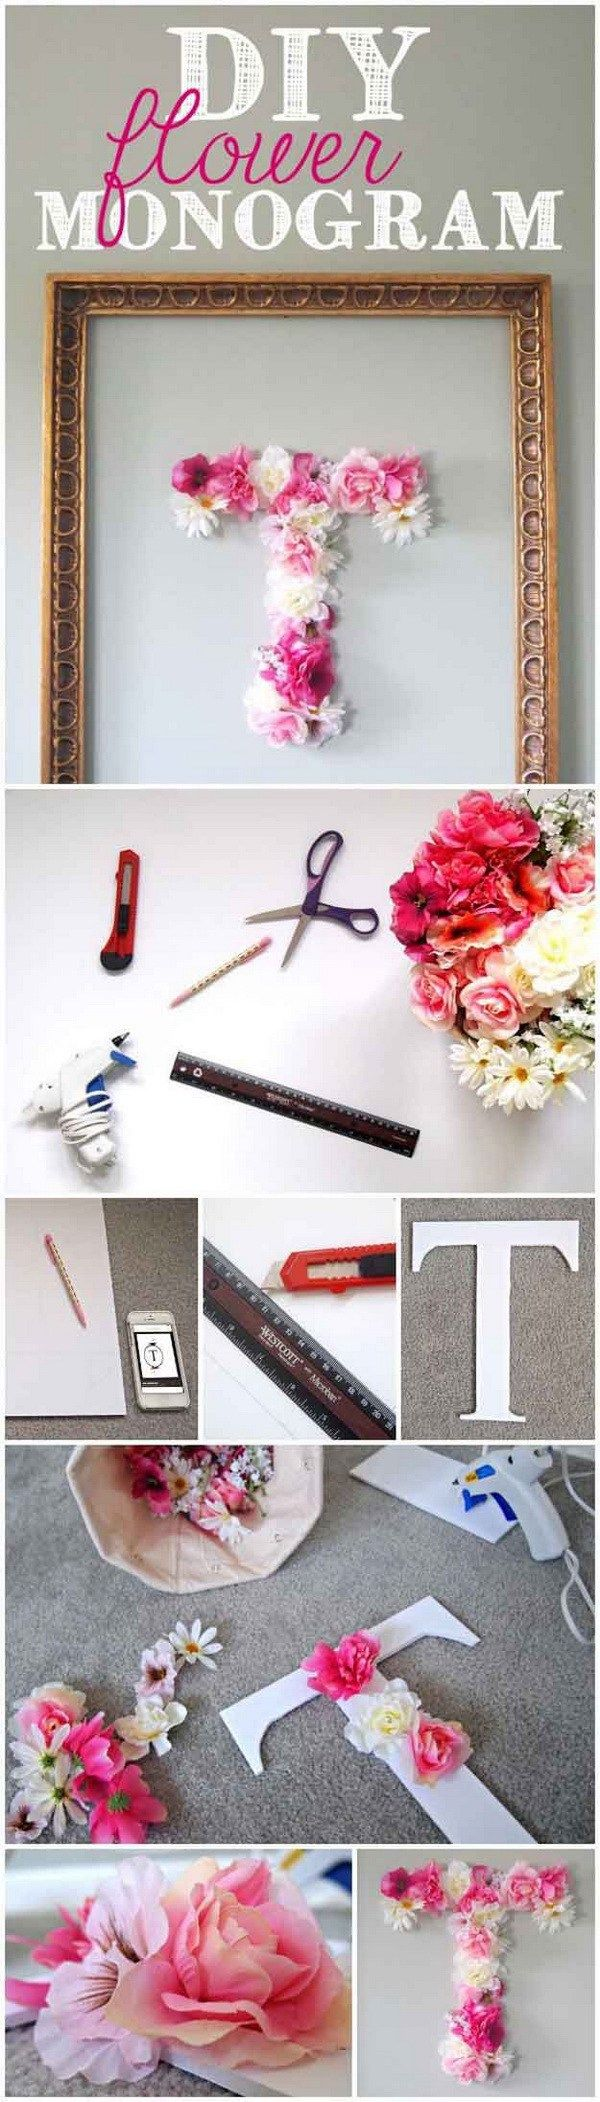 25 Stunning DIY Wall Art Ideas u0026